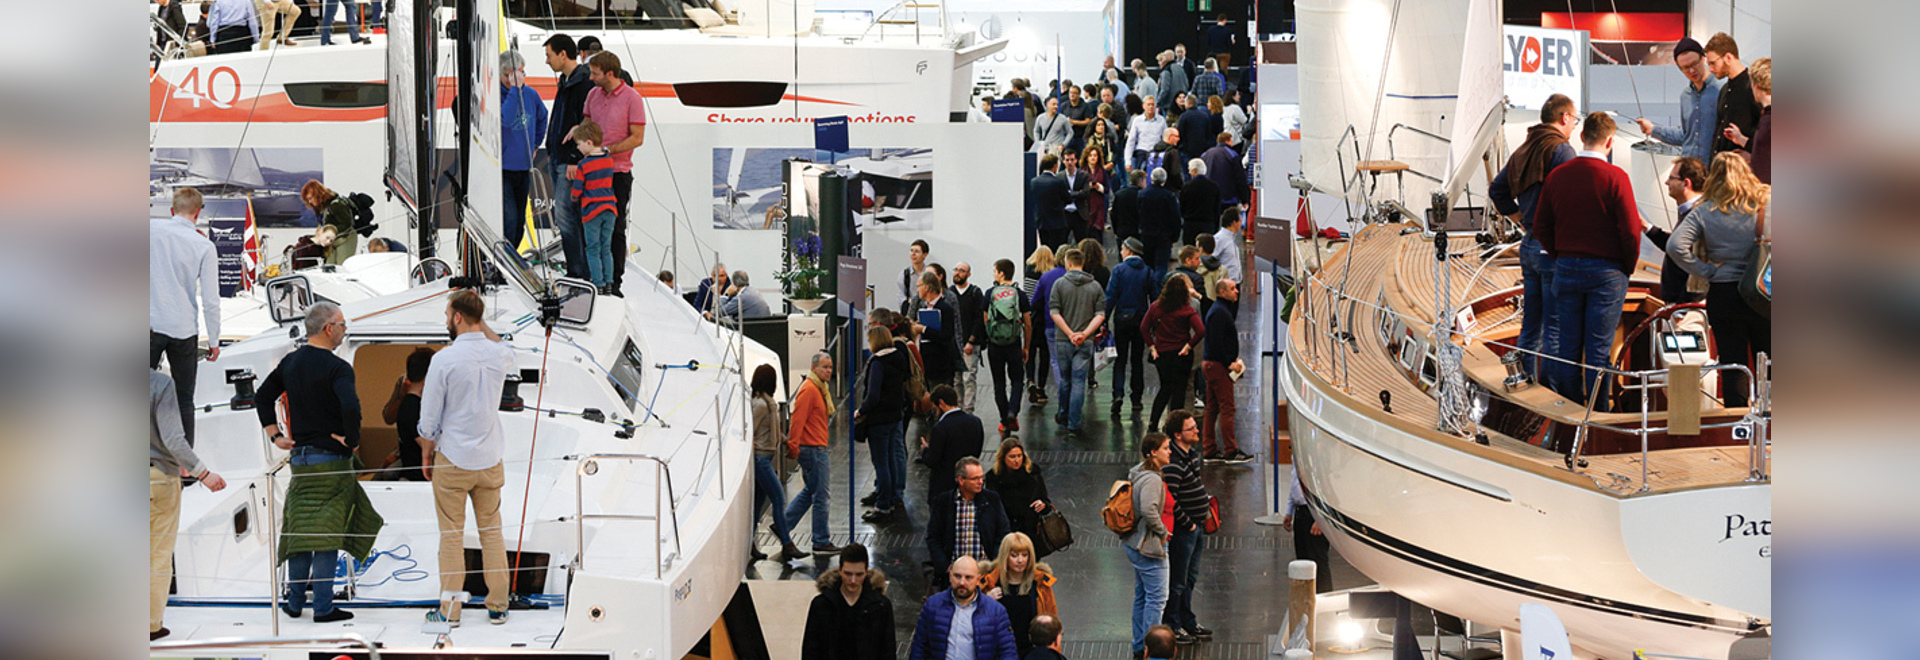 The 2021 Düsseldorf Boat Show will be delayed by almost 3 months due to the COVID-19 pandemic